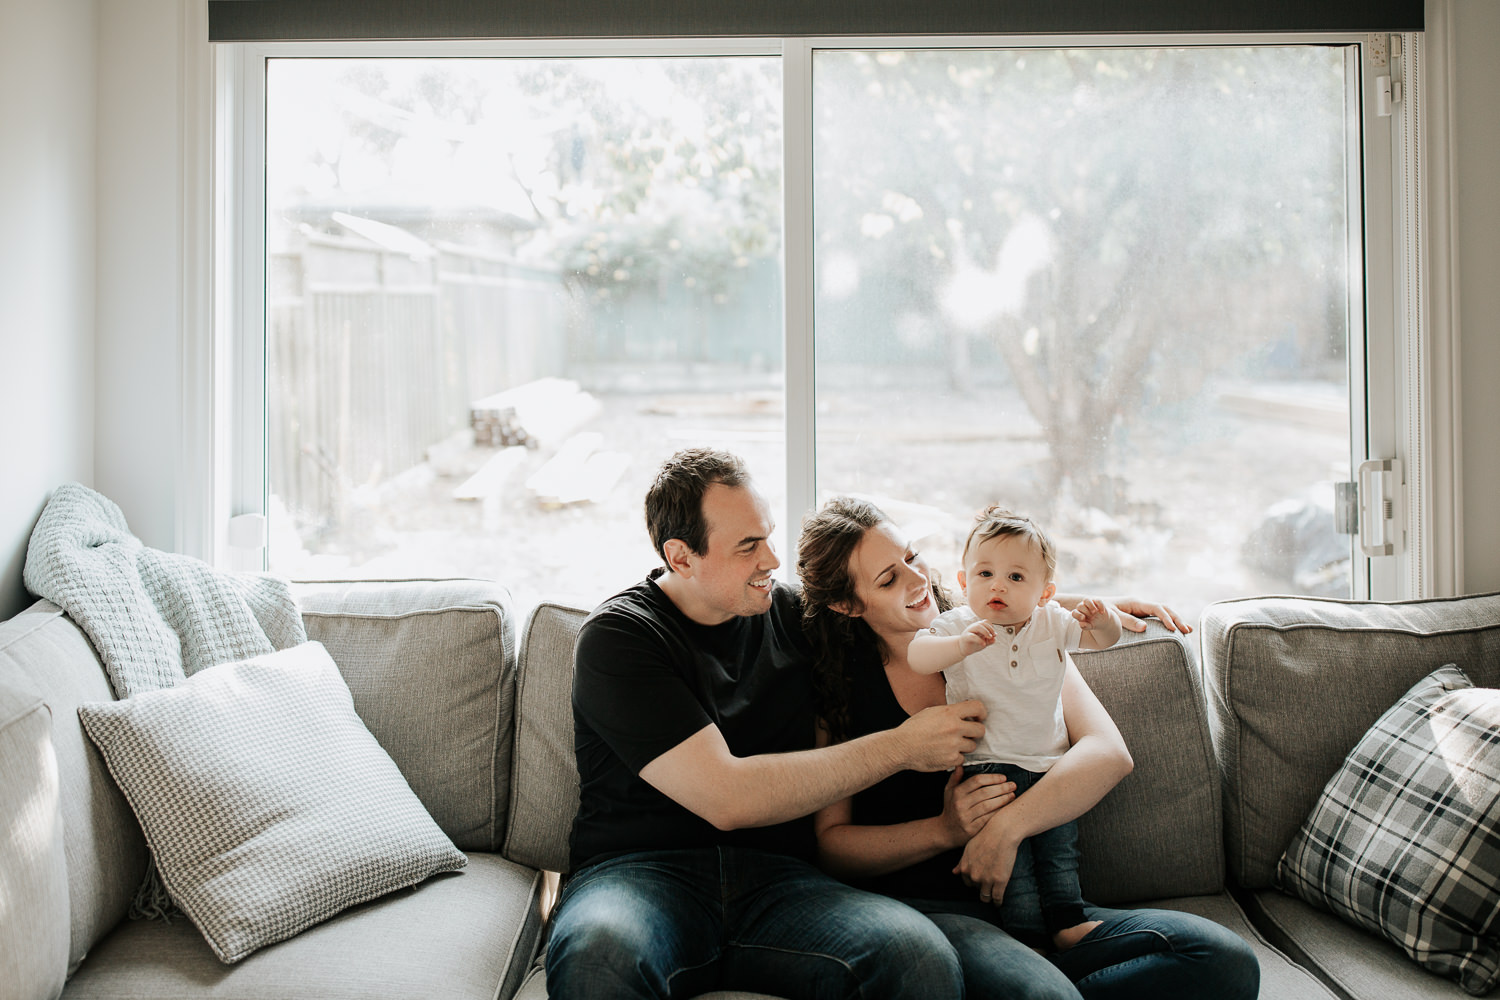 family of 3 sitting on couch, 9 month old baby boy with dark hair standing on mom's lap looking at camera, parents smiling at son - Stouffville Golden Hour Photography